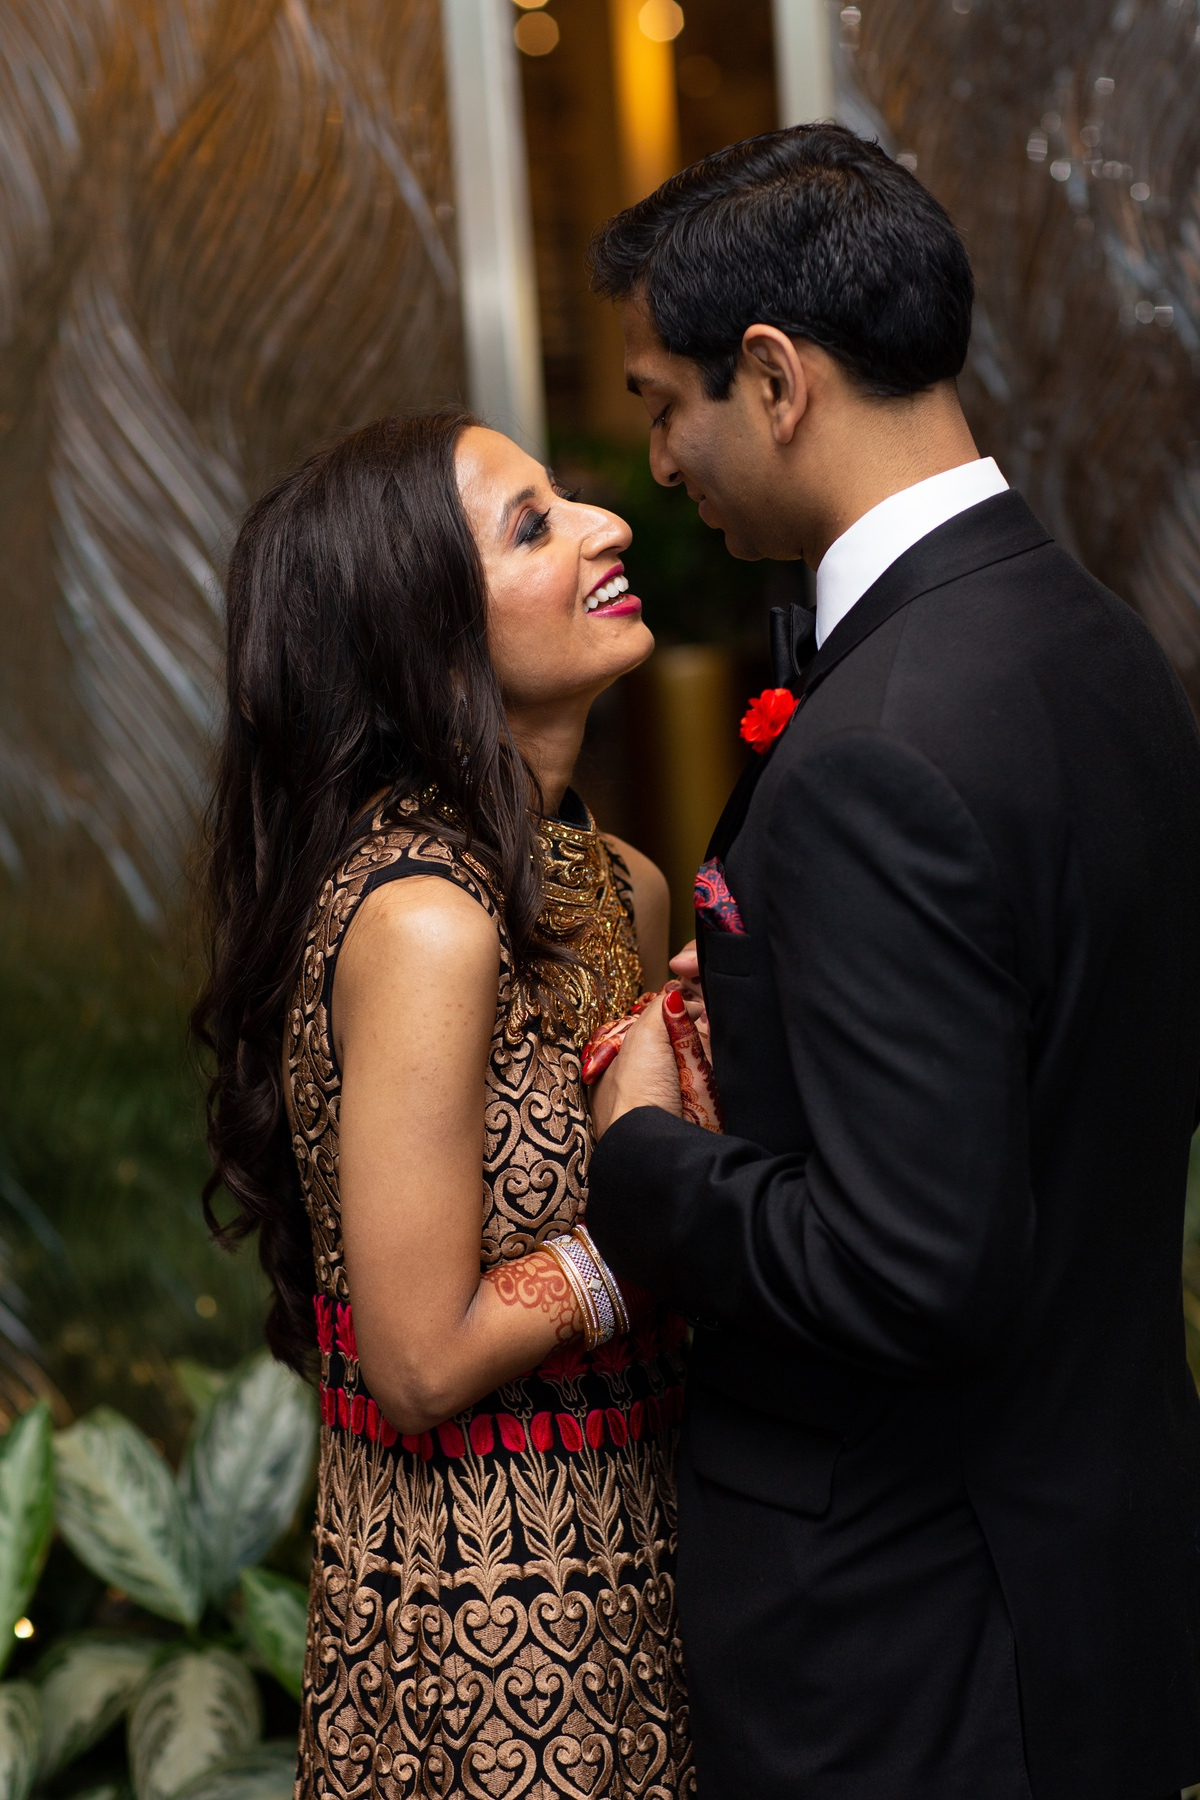 Le Cape Weddings - South Asian Wedding - Chicago Wedding Photographer P&V-105.jpg